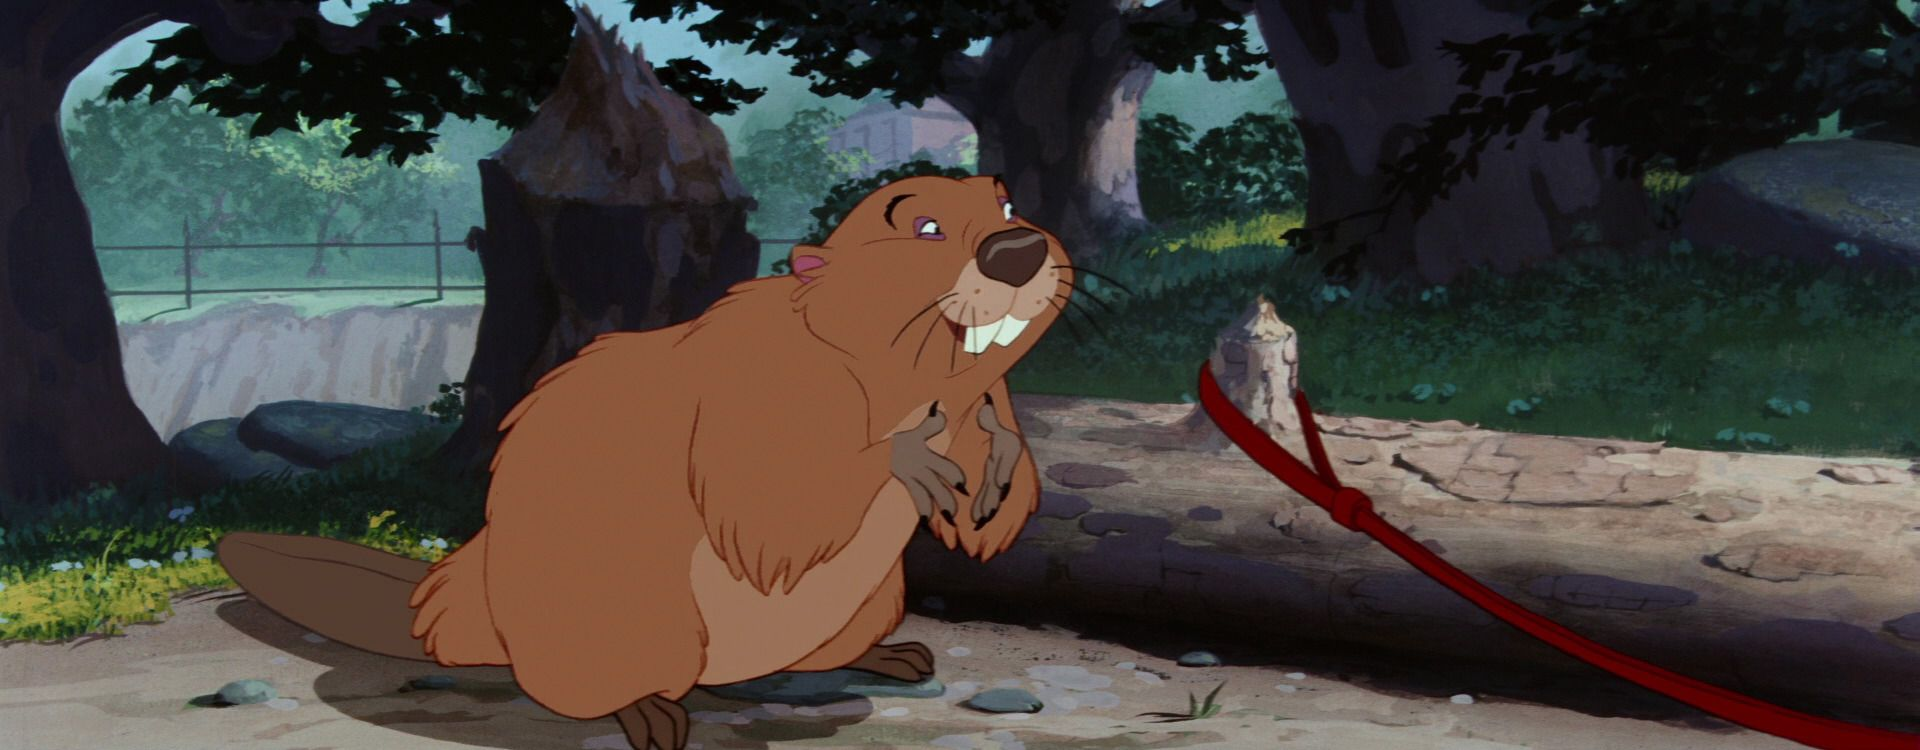 Stan Freberg Voiced Busy The Beaver In Lady In The Tramp He Passed Away On Tuesday 14 April 2015 Fantastic Humorist And Voice Artist He Will Be Missed